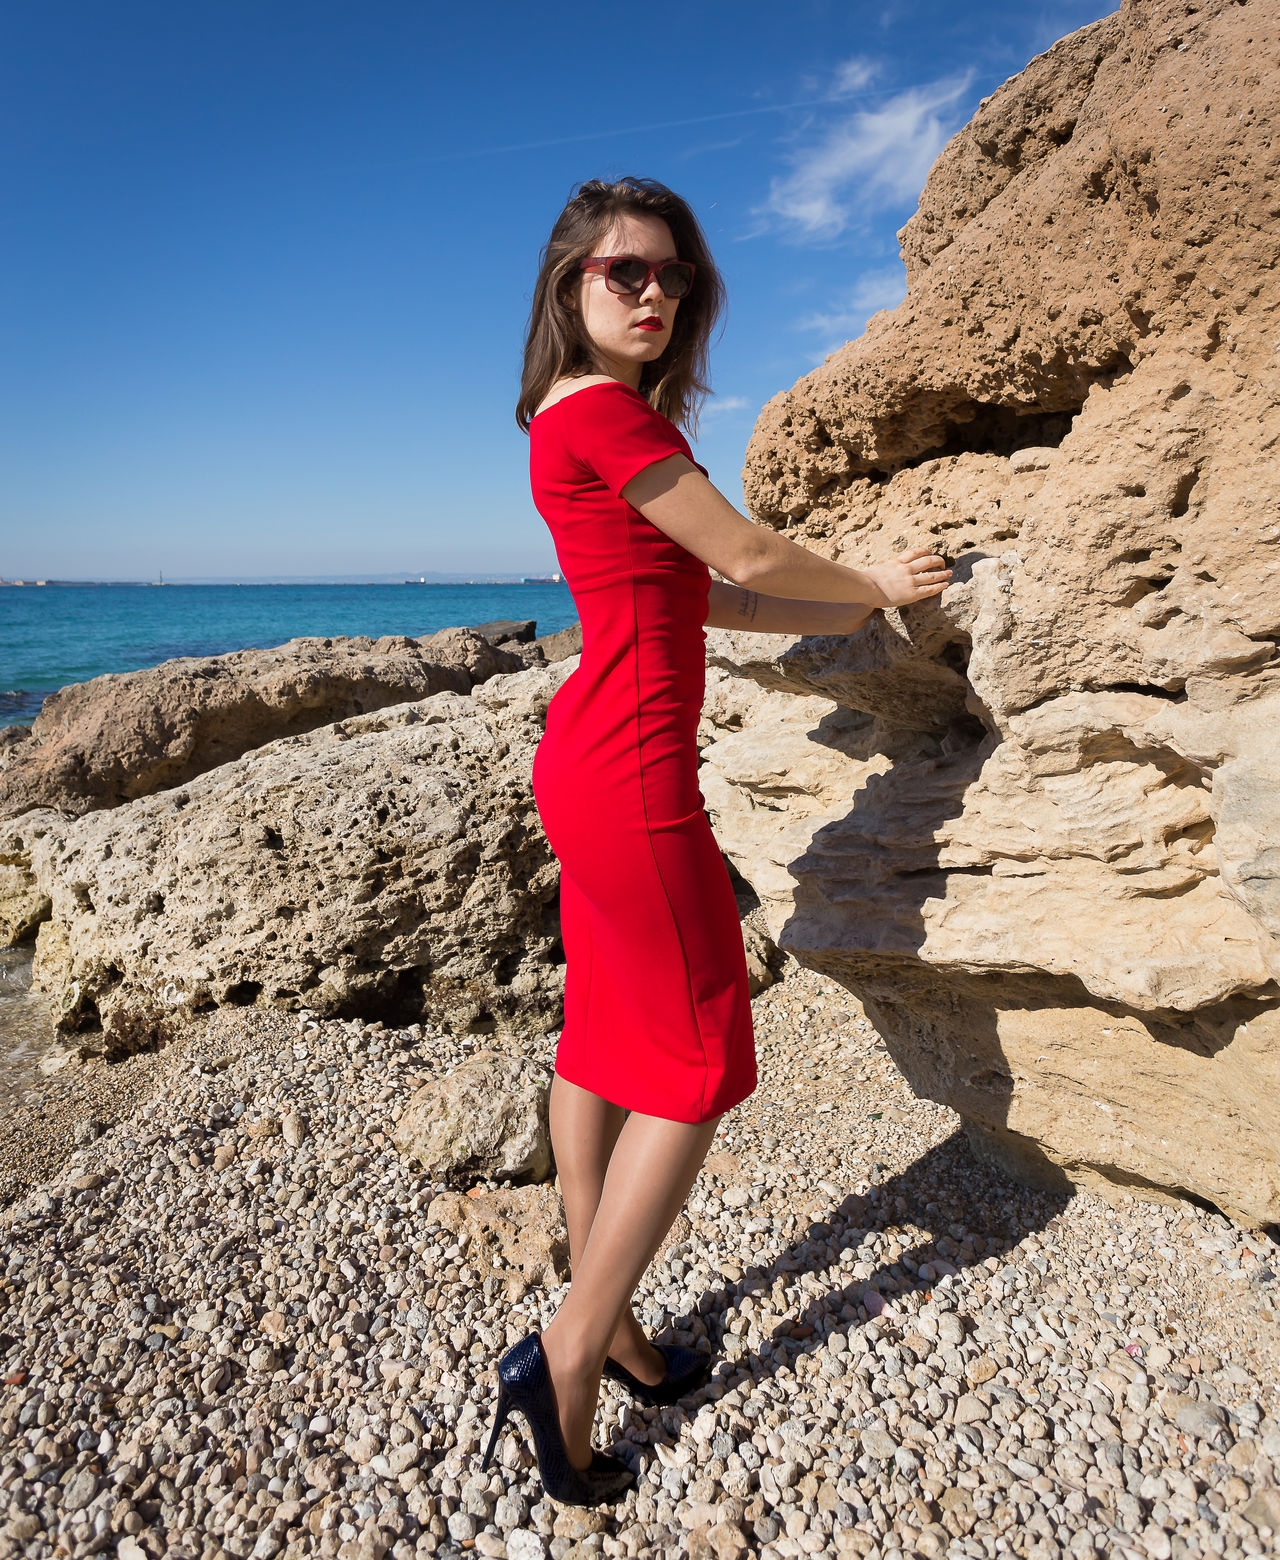 Beach Beautiful Beautiful People Beautiful Woman Beauty Dress Elégance Full Length Girl Looking At Camera Nature Only Women Outdoors Port Portrait Portraits Red Red Dress Sea Side View Standing Sunglasses Sunlight Women Of EyeEm Women Who Inspire You